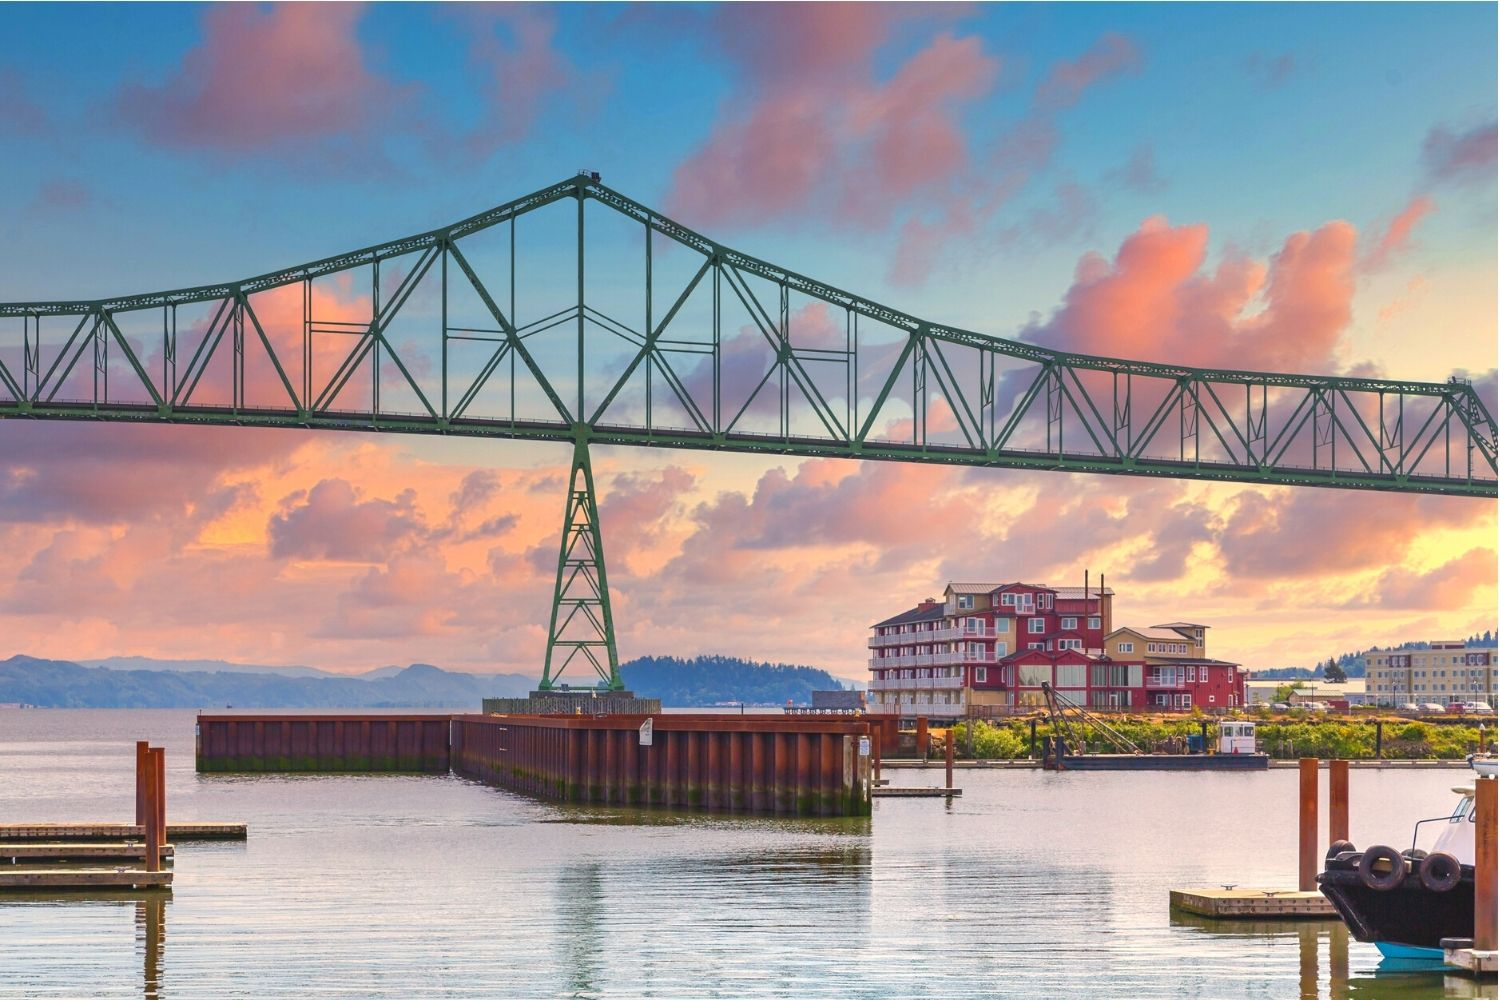 astoria bridge and cannery pier hotel